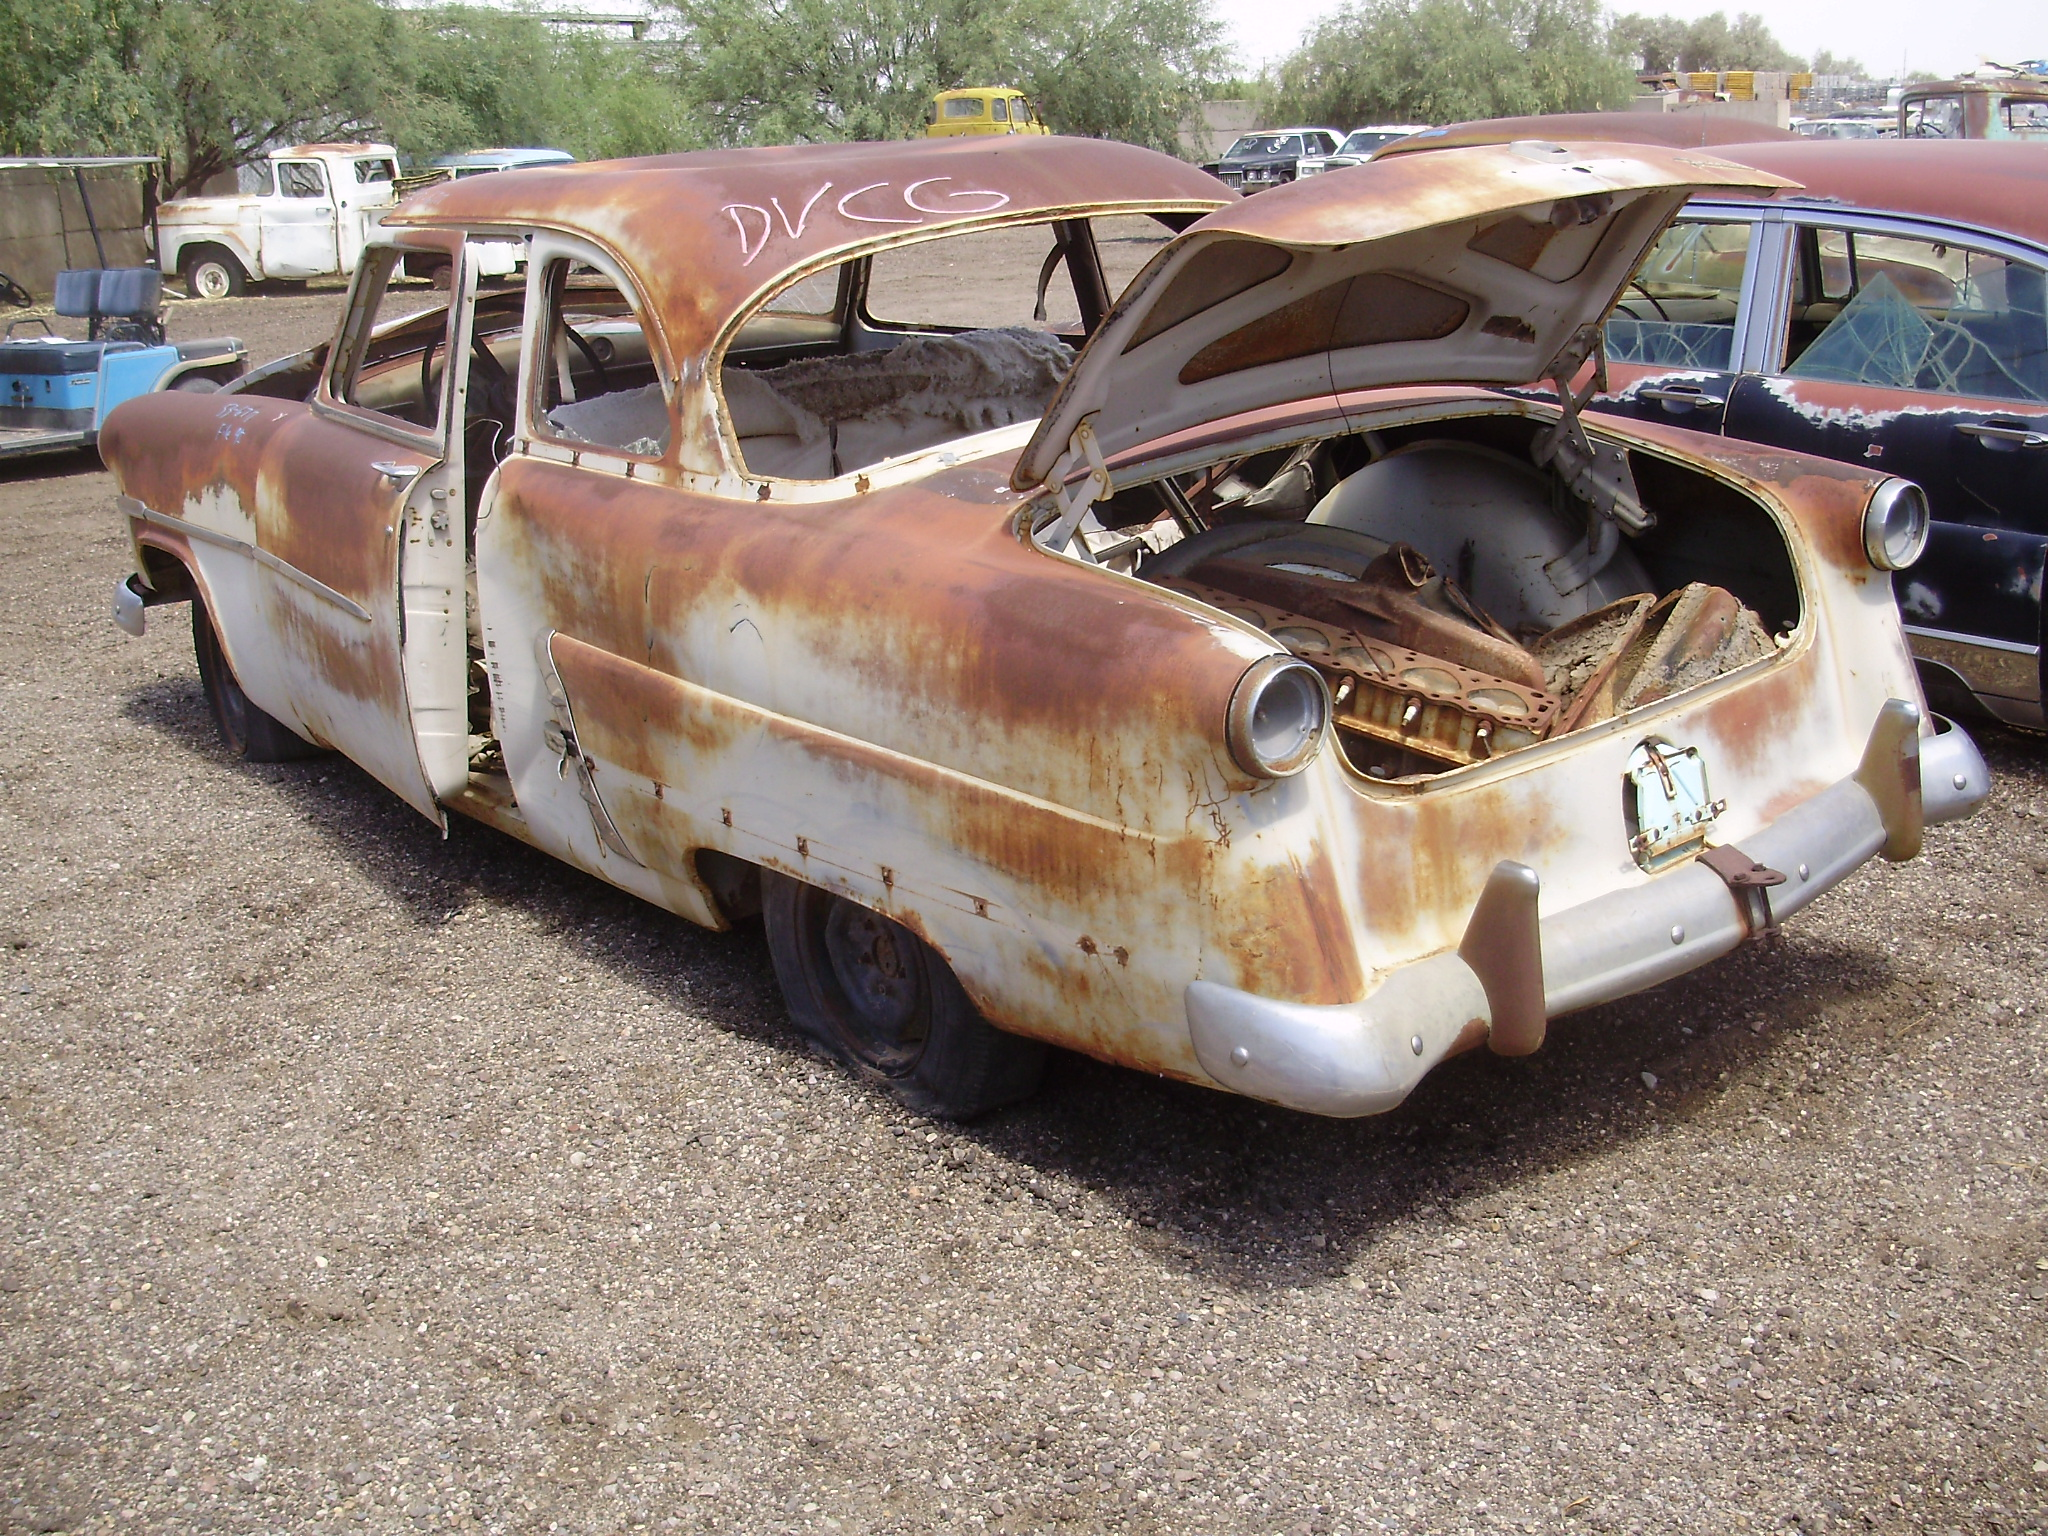 1953 Ford Ford Car (#53FO6717C) | Desert Valley Auto Parts - photo#17